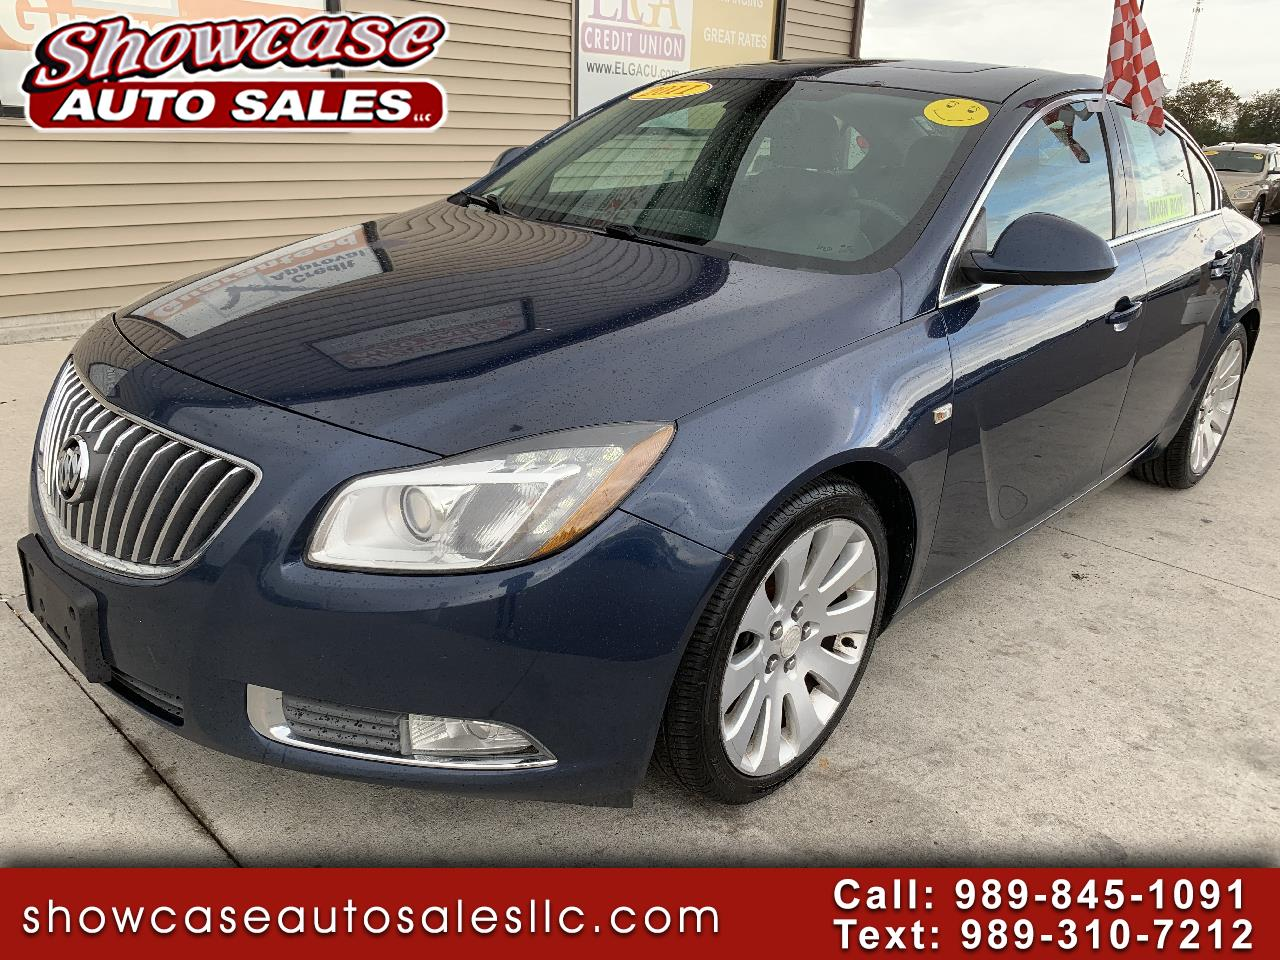 Buick Regal 4dr Sdn CXL Turbo TO6 (Russelsheim) *Ltd Avail* 2011